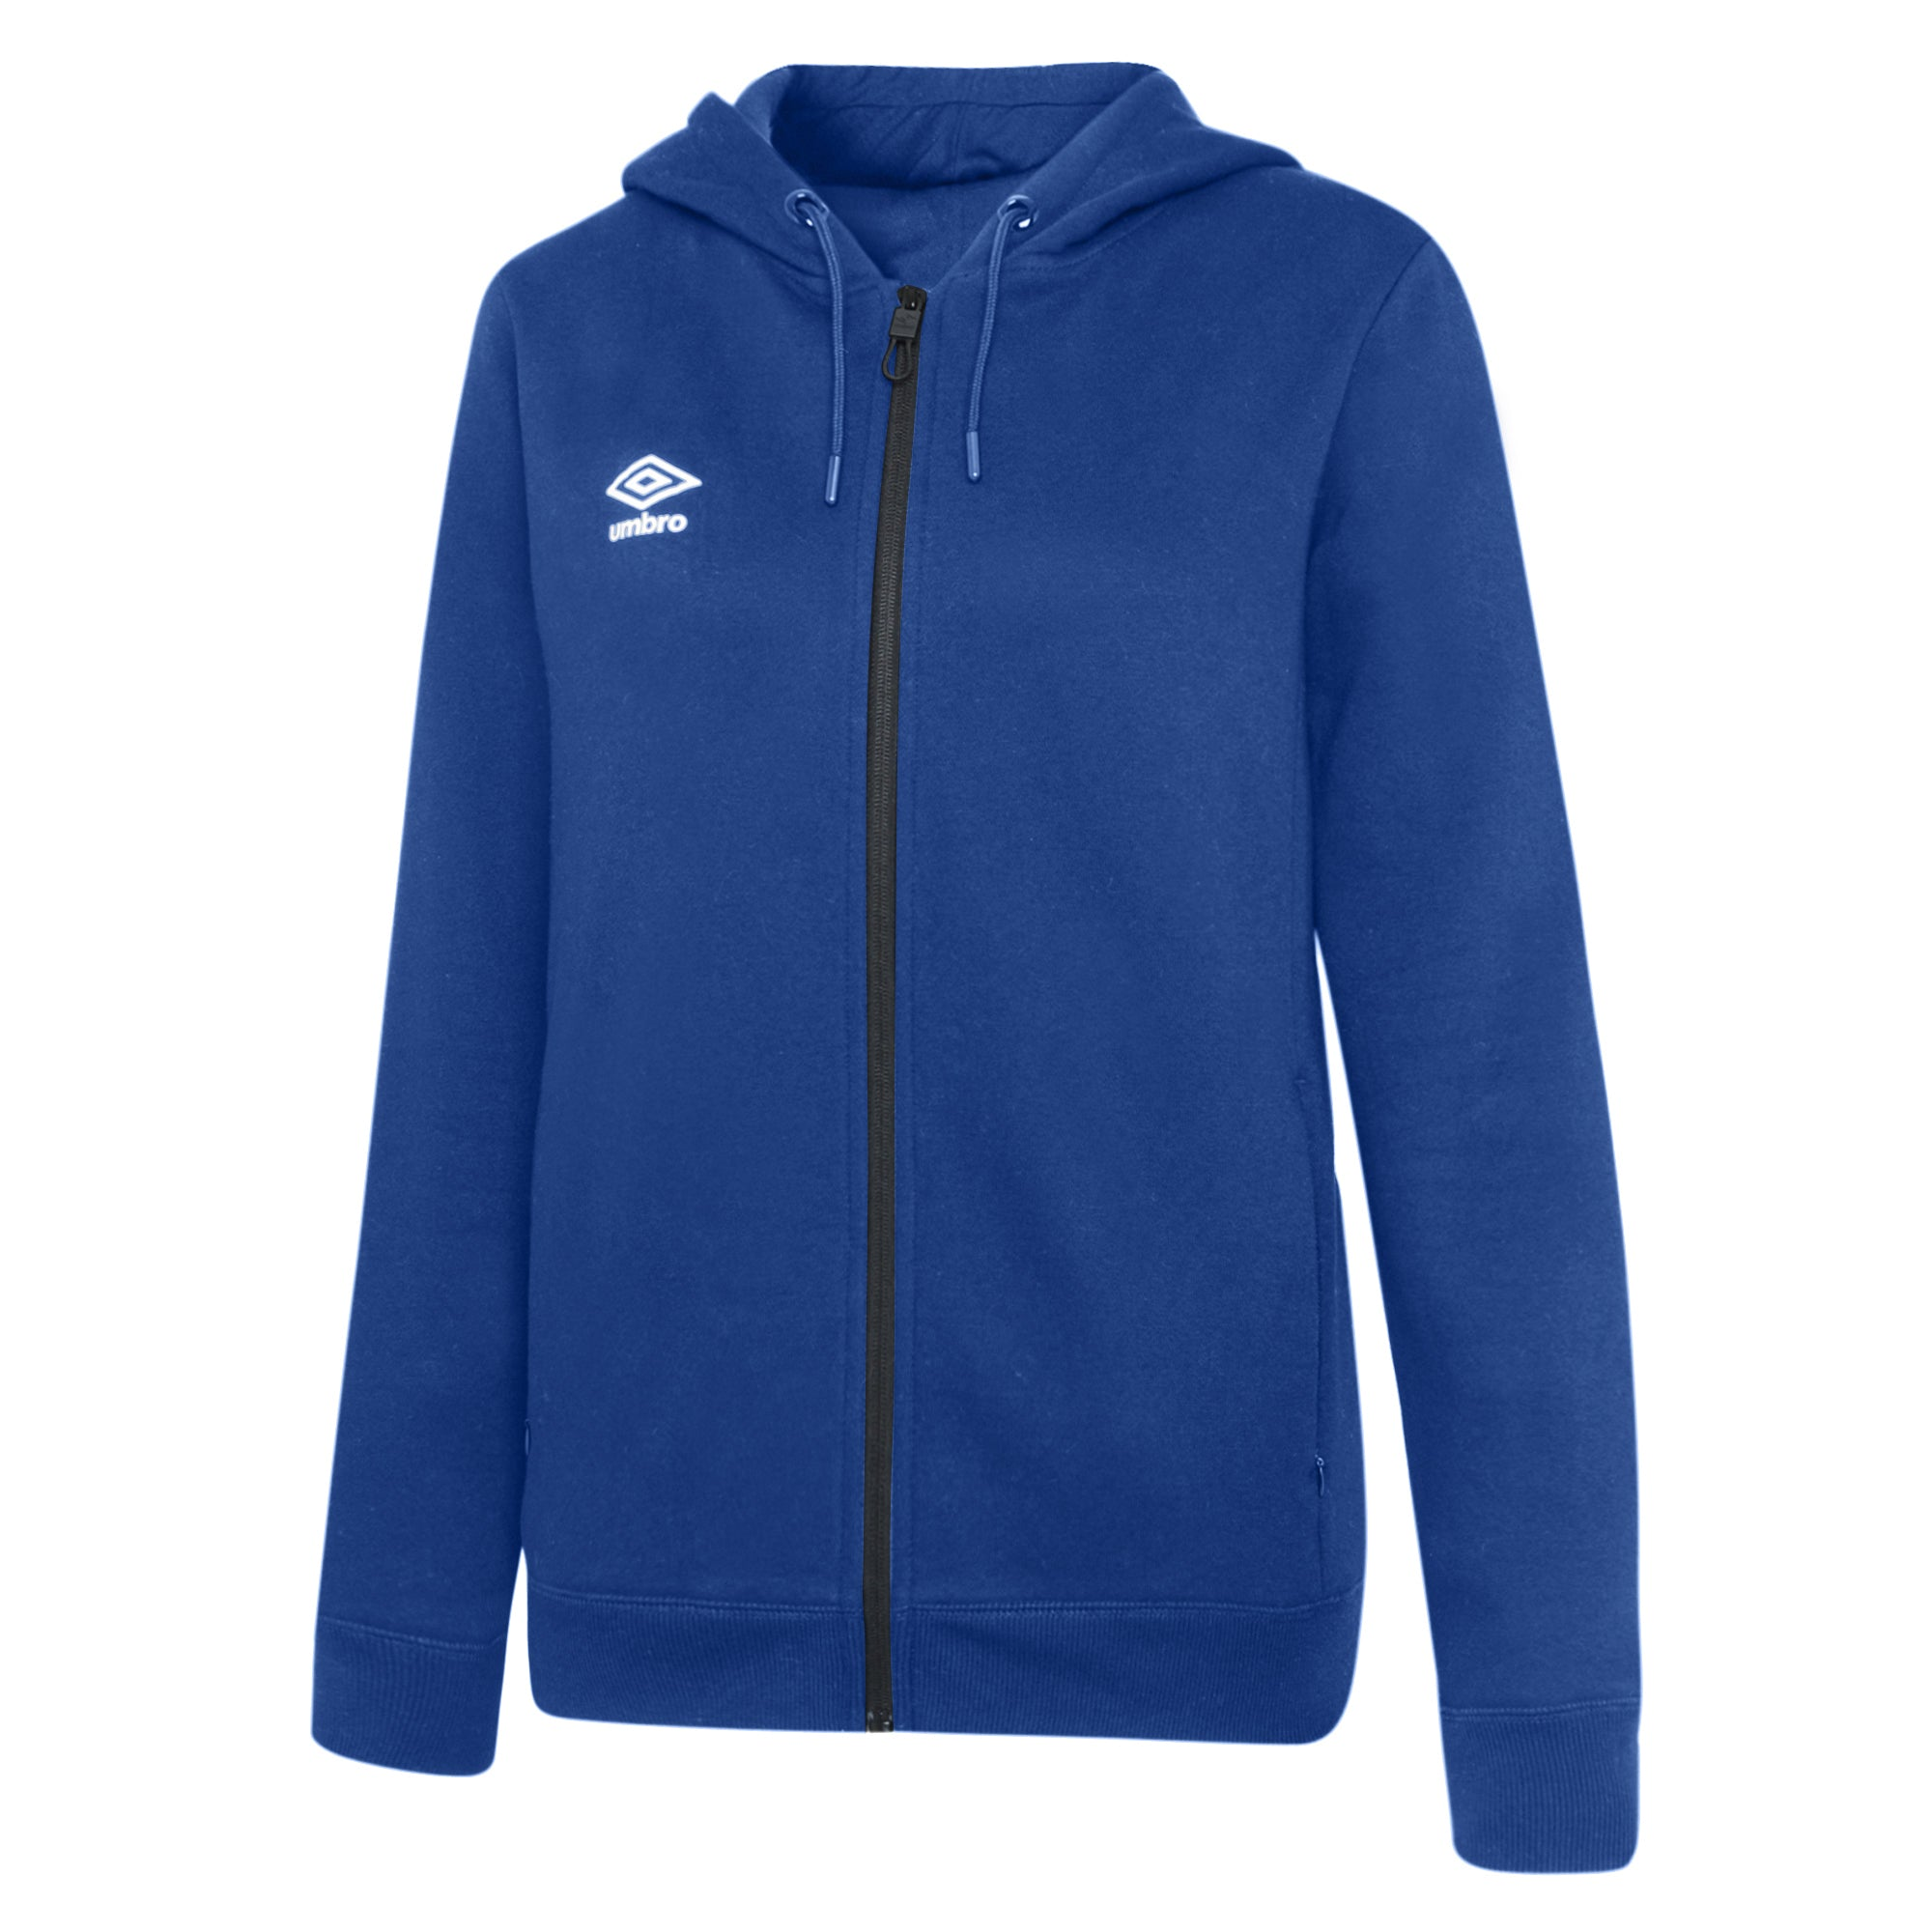 Umbro Club Leisure Women's Zipped Hoody - TW Royal/White